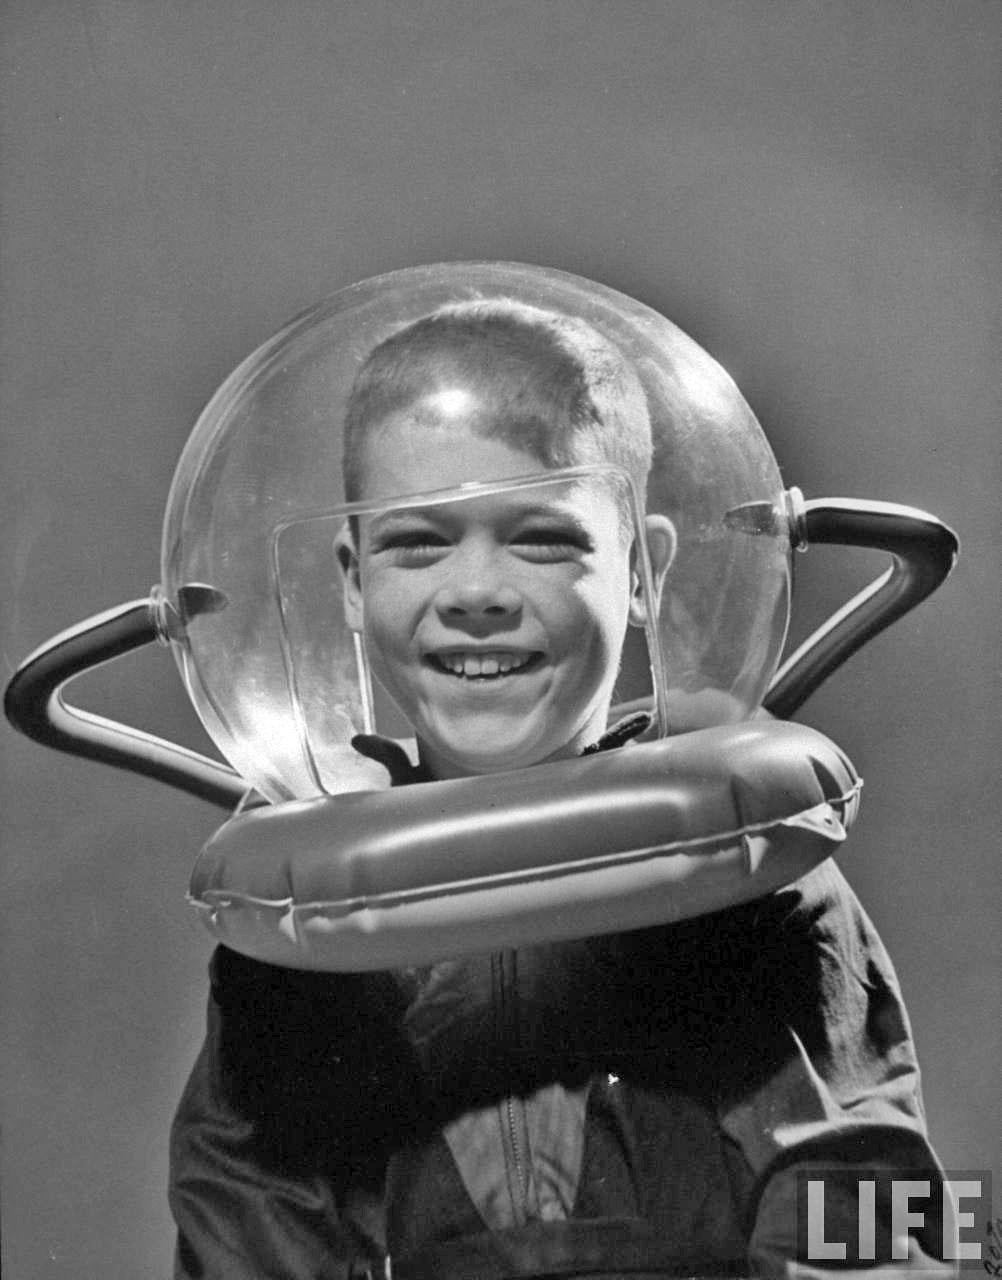 Rocket Ship Prize boy with space helmet